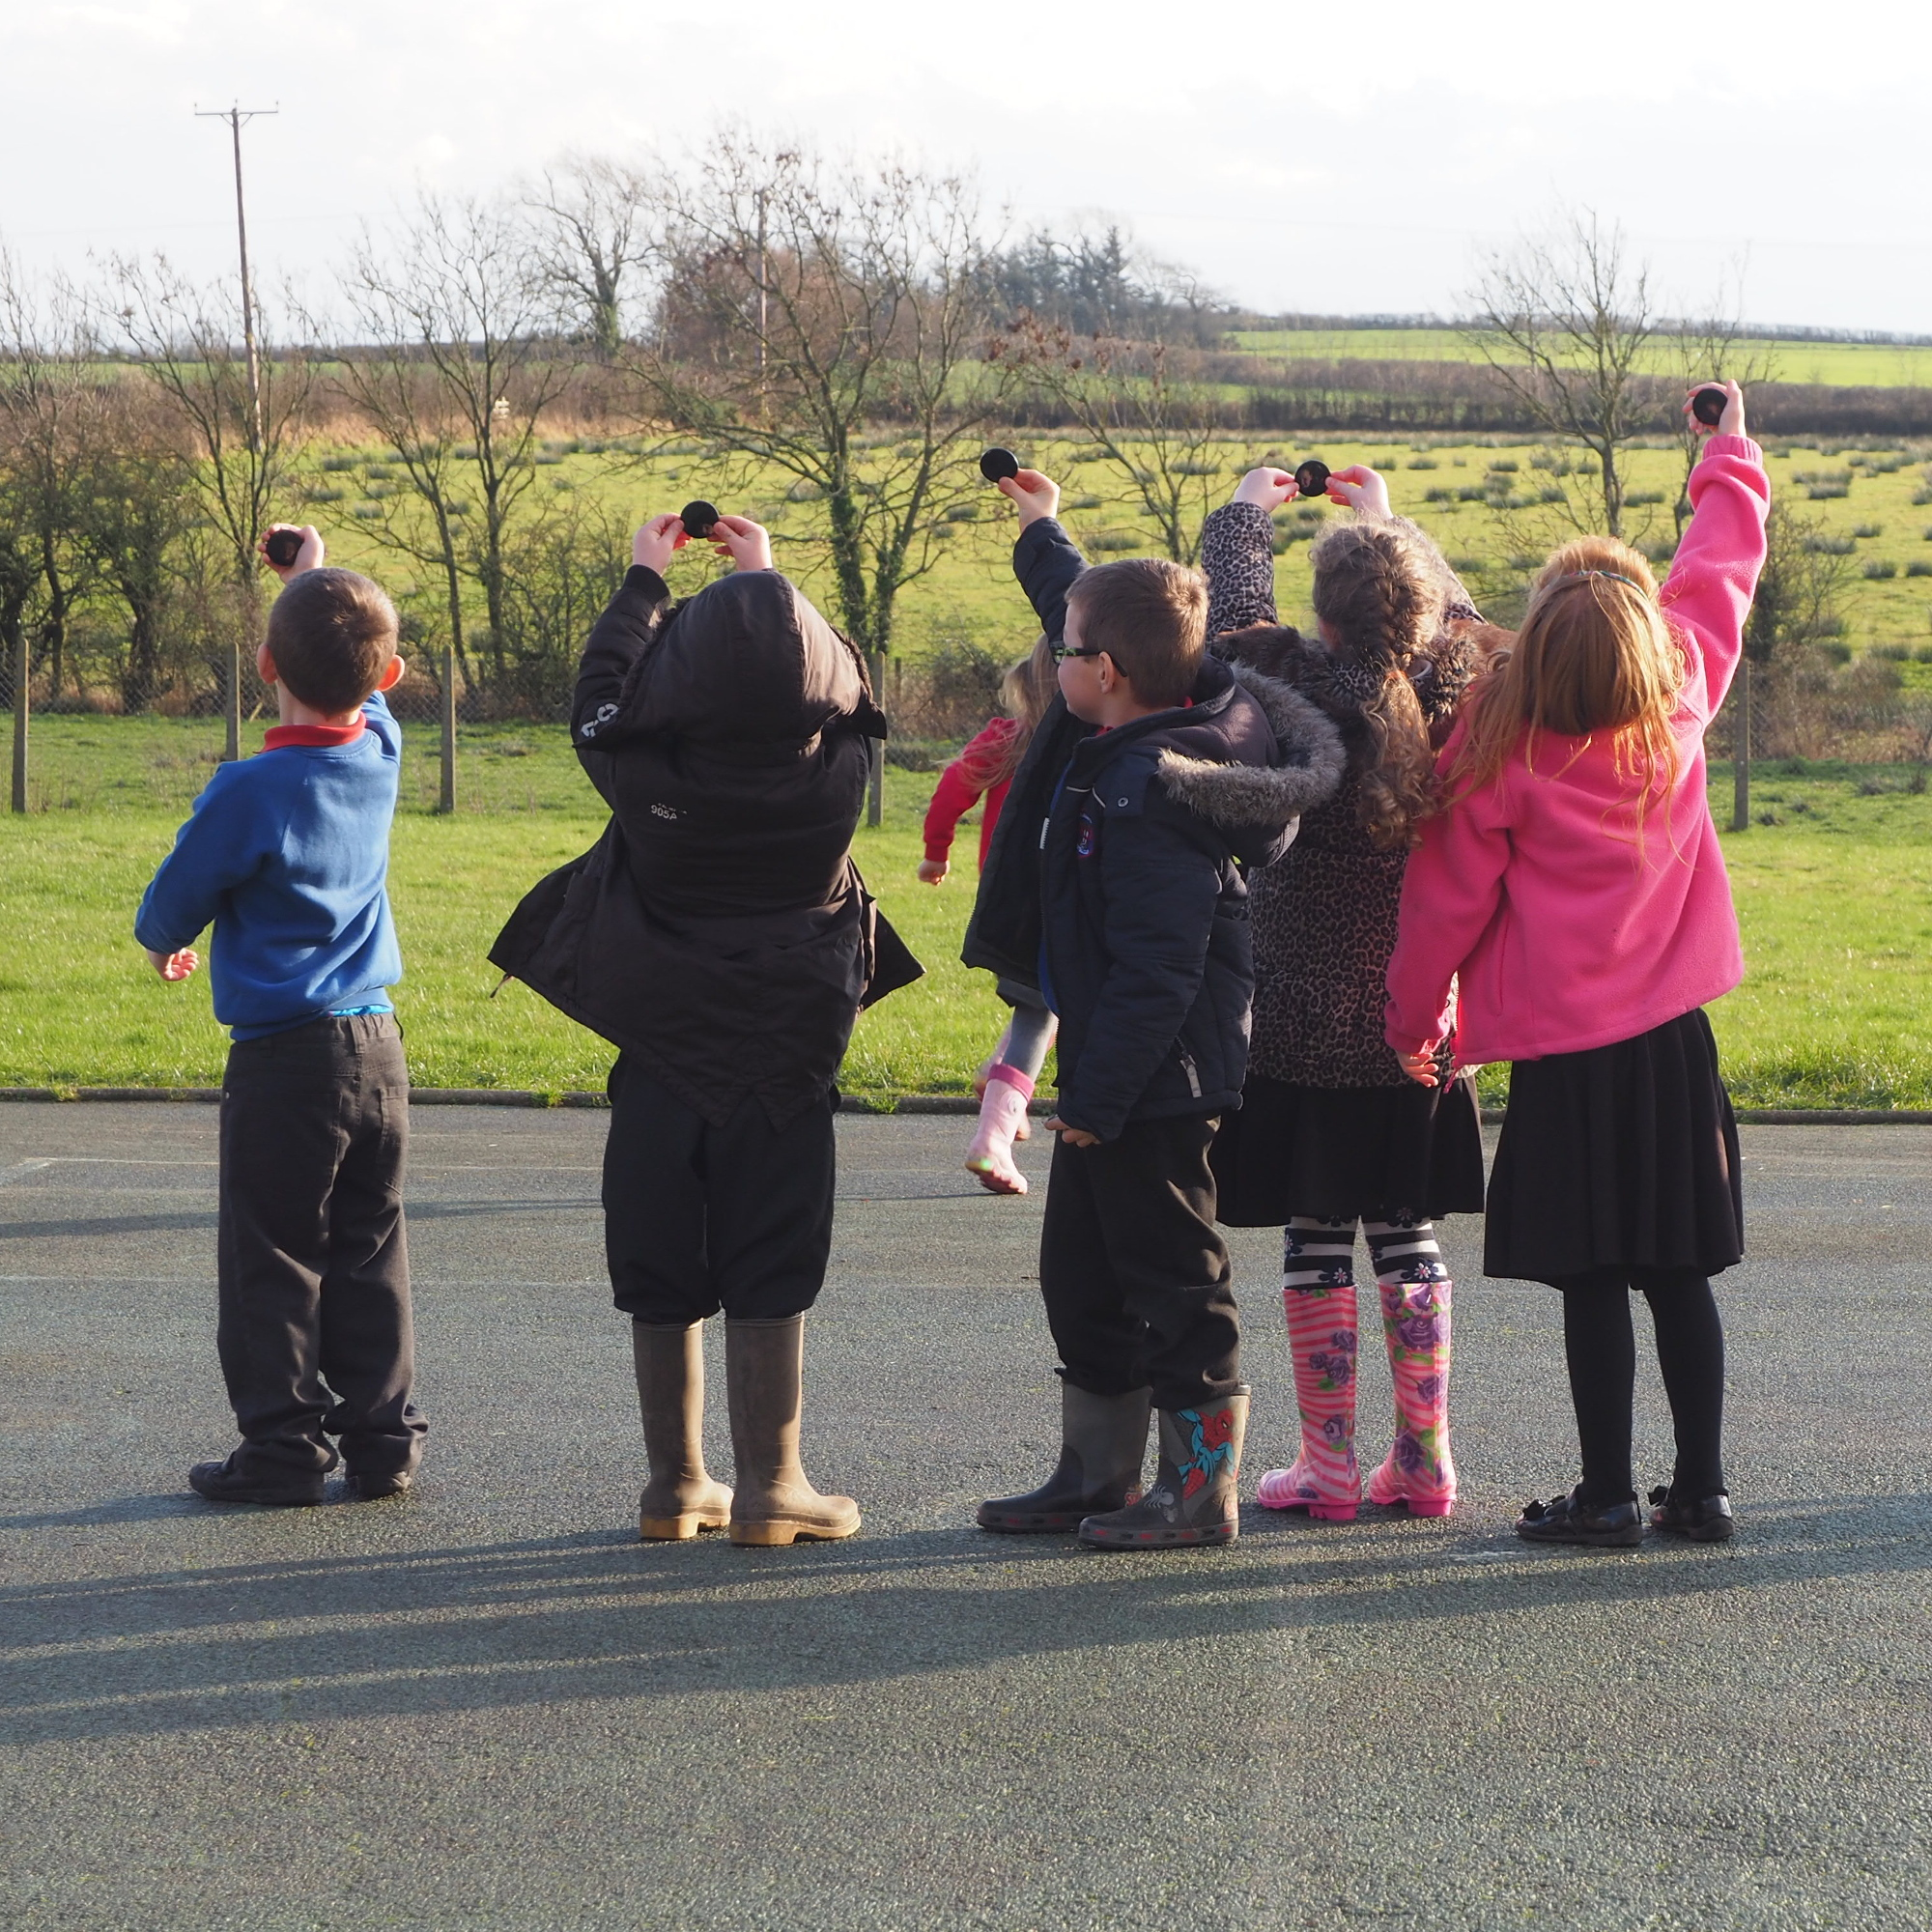 School children playing with Claude glass in Cumbria. Holly Corfield Carr, January 2017